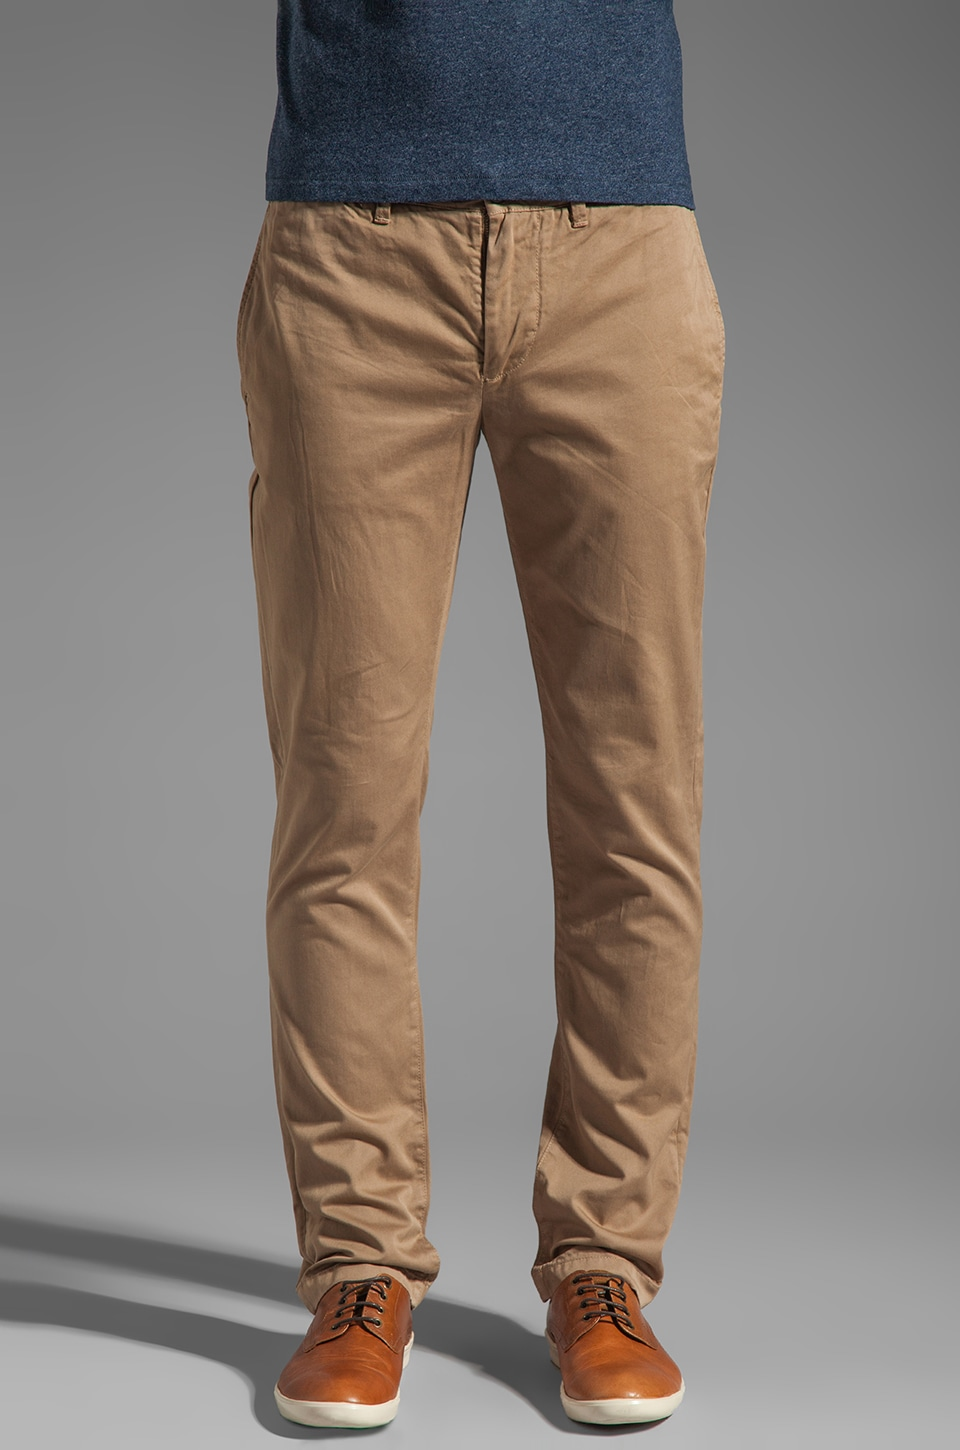 Jack Spade Slim Chinos in Dark Khaki